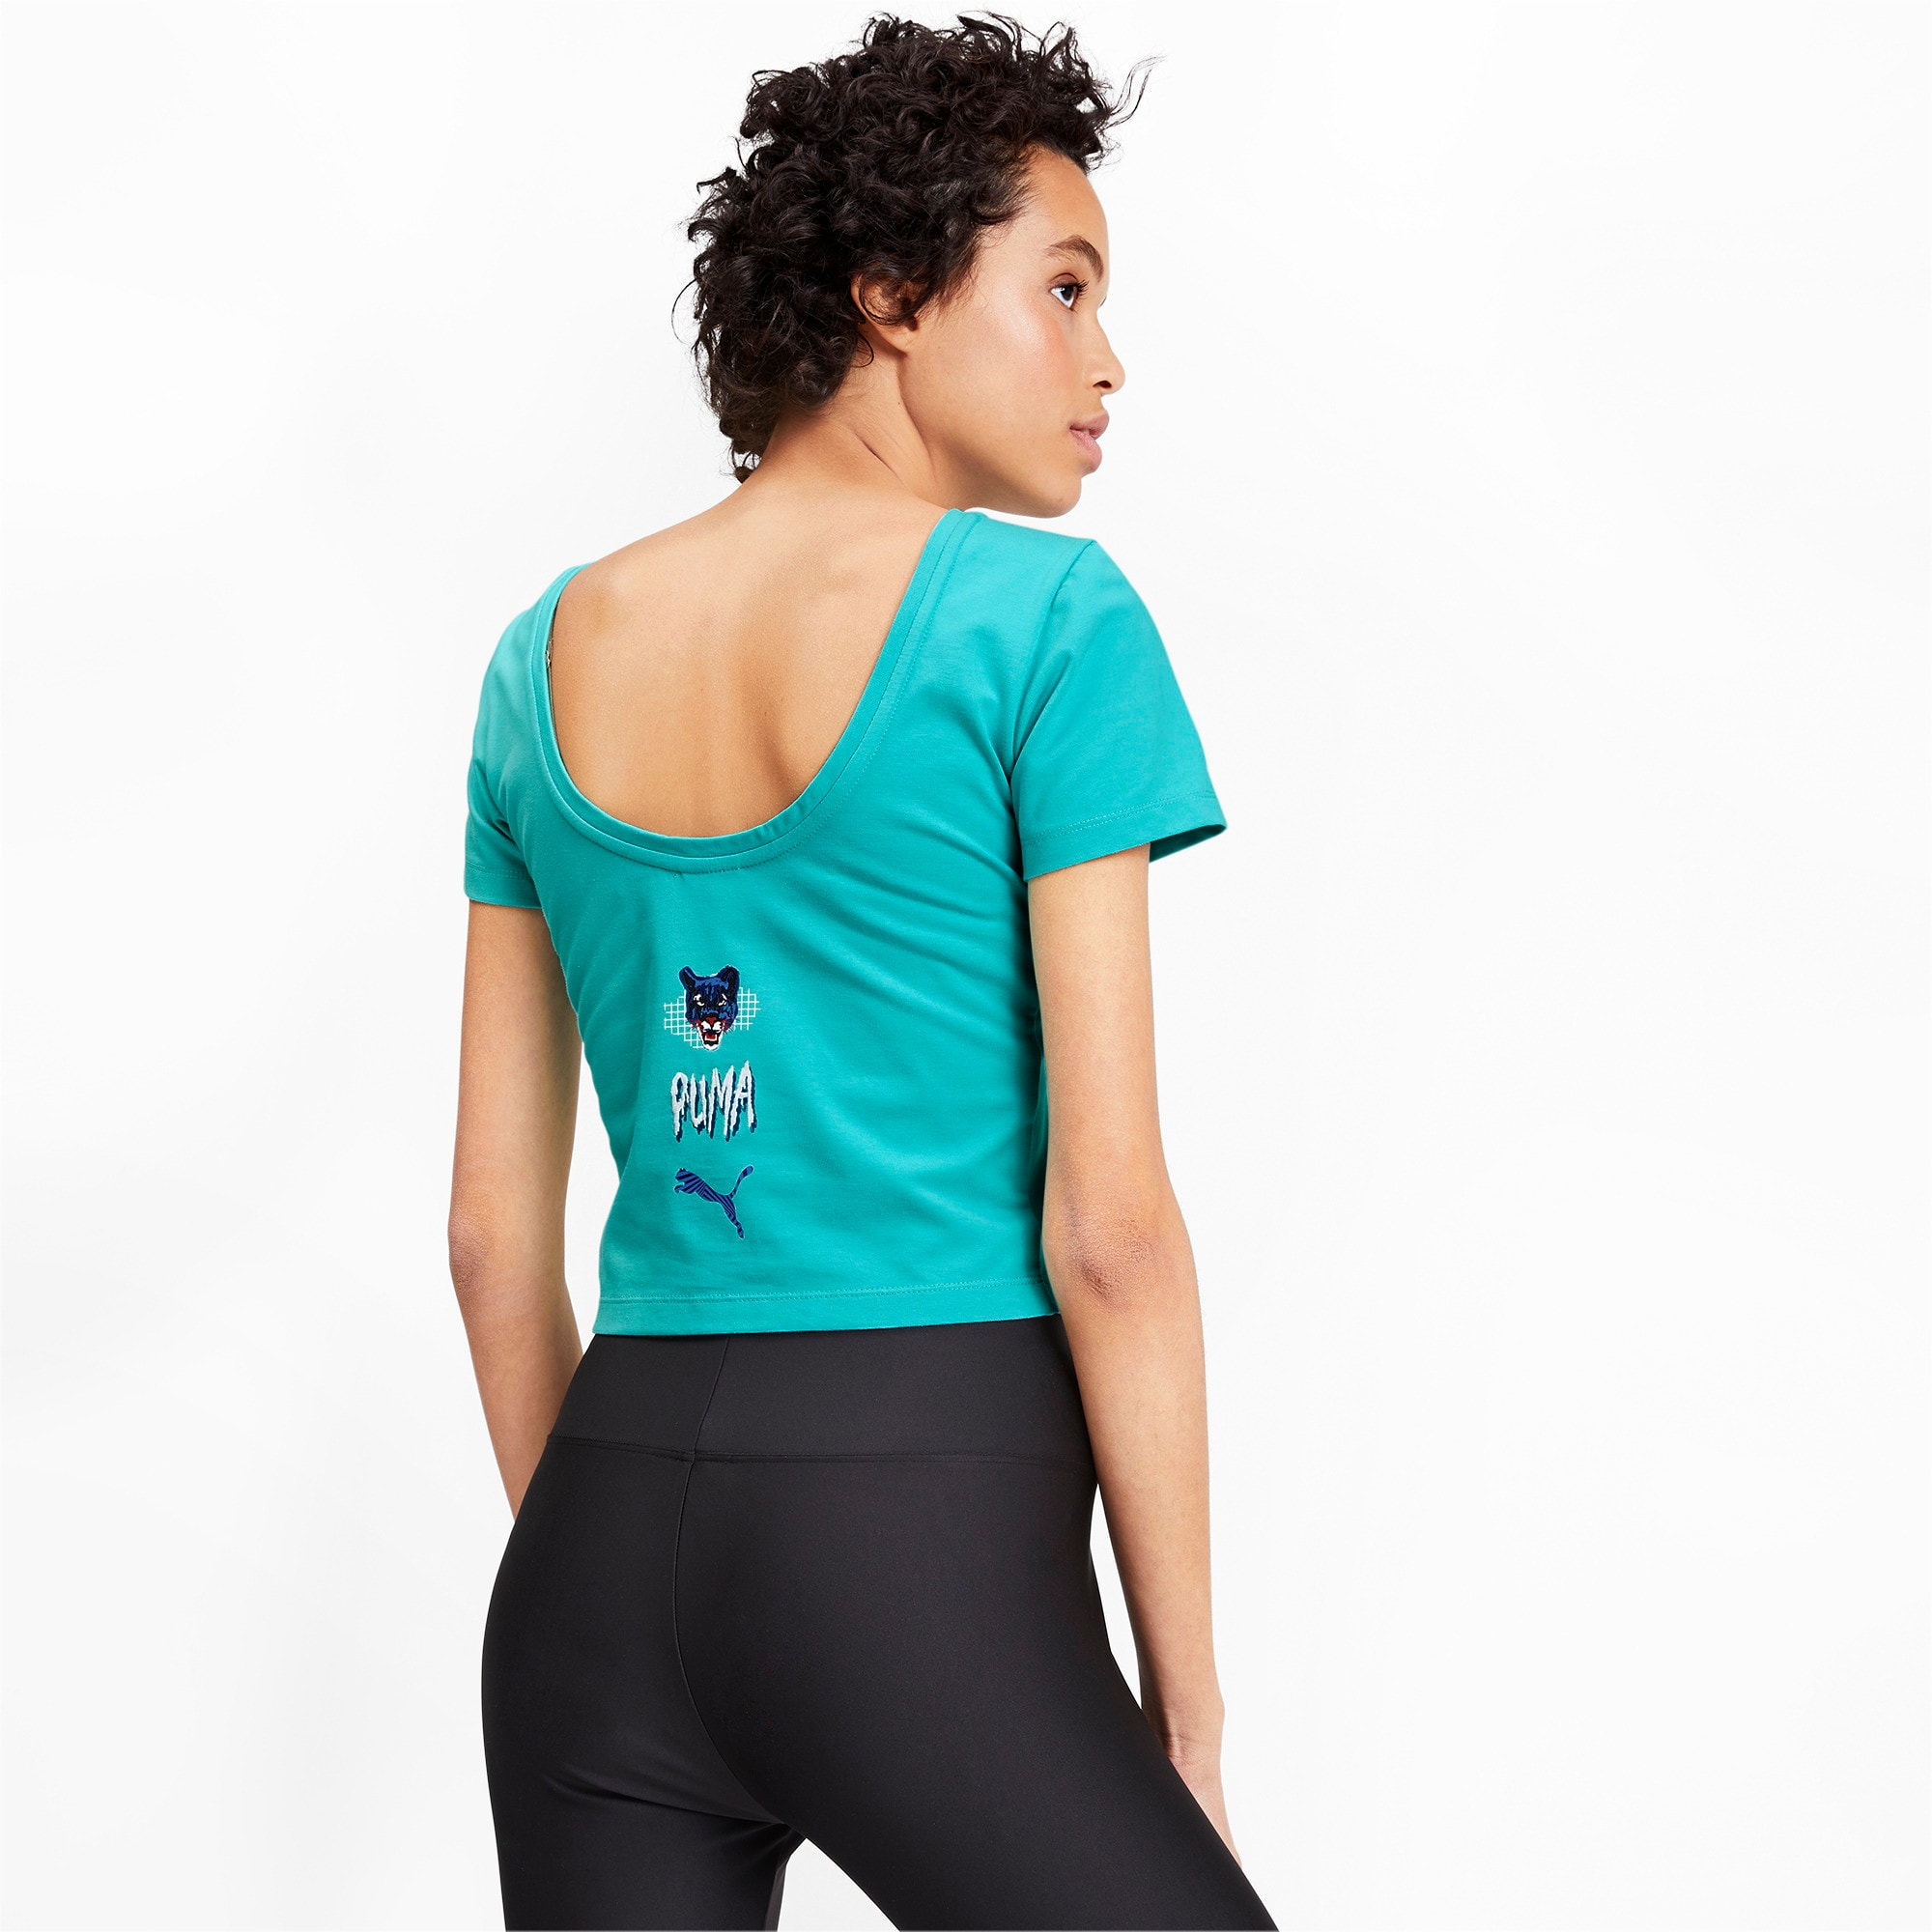 Thumbnail 3 of Claw Women's Top, Blue Turquoise, medium